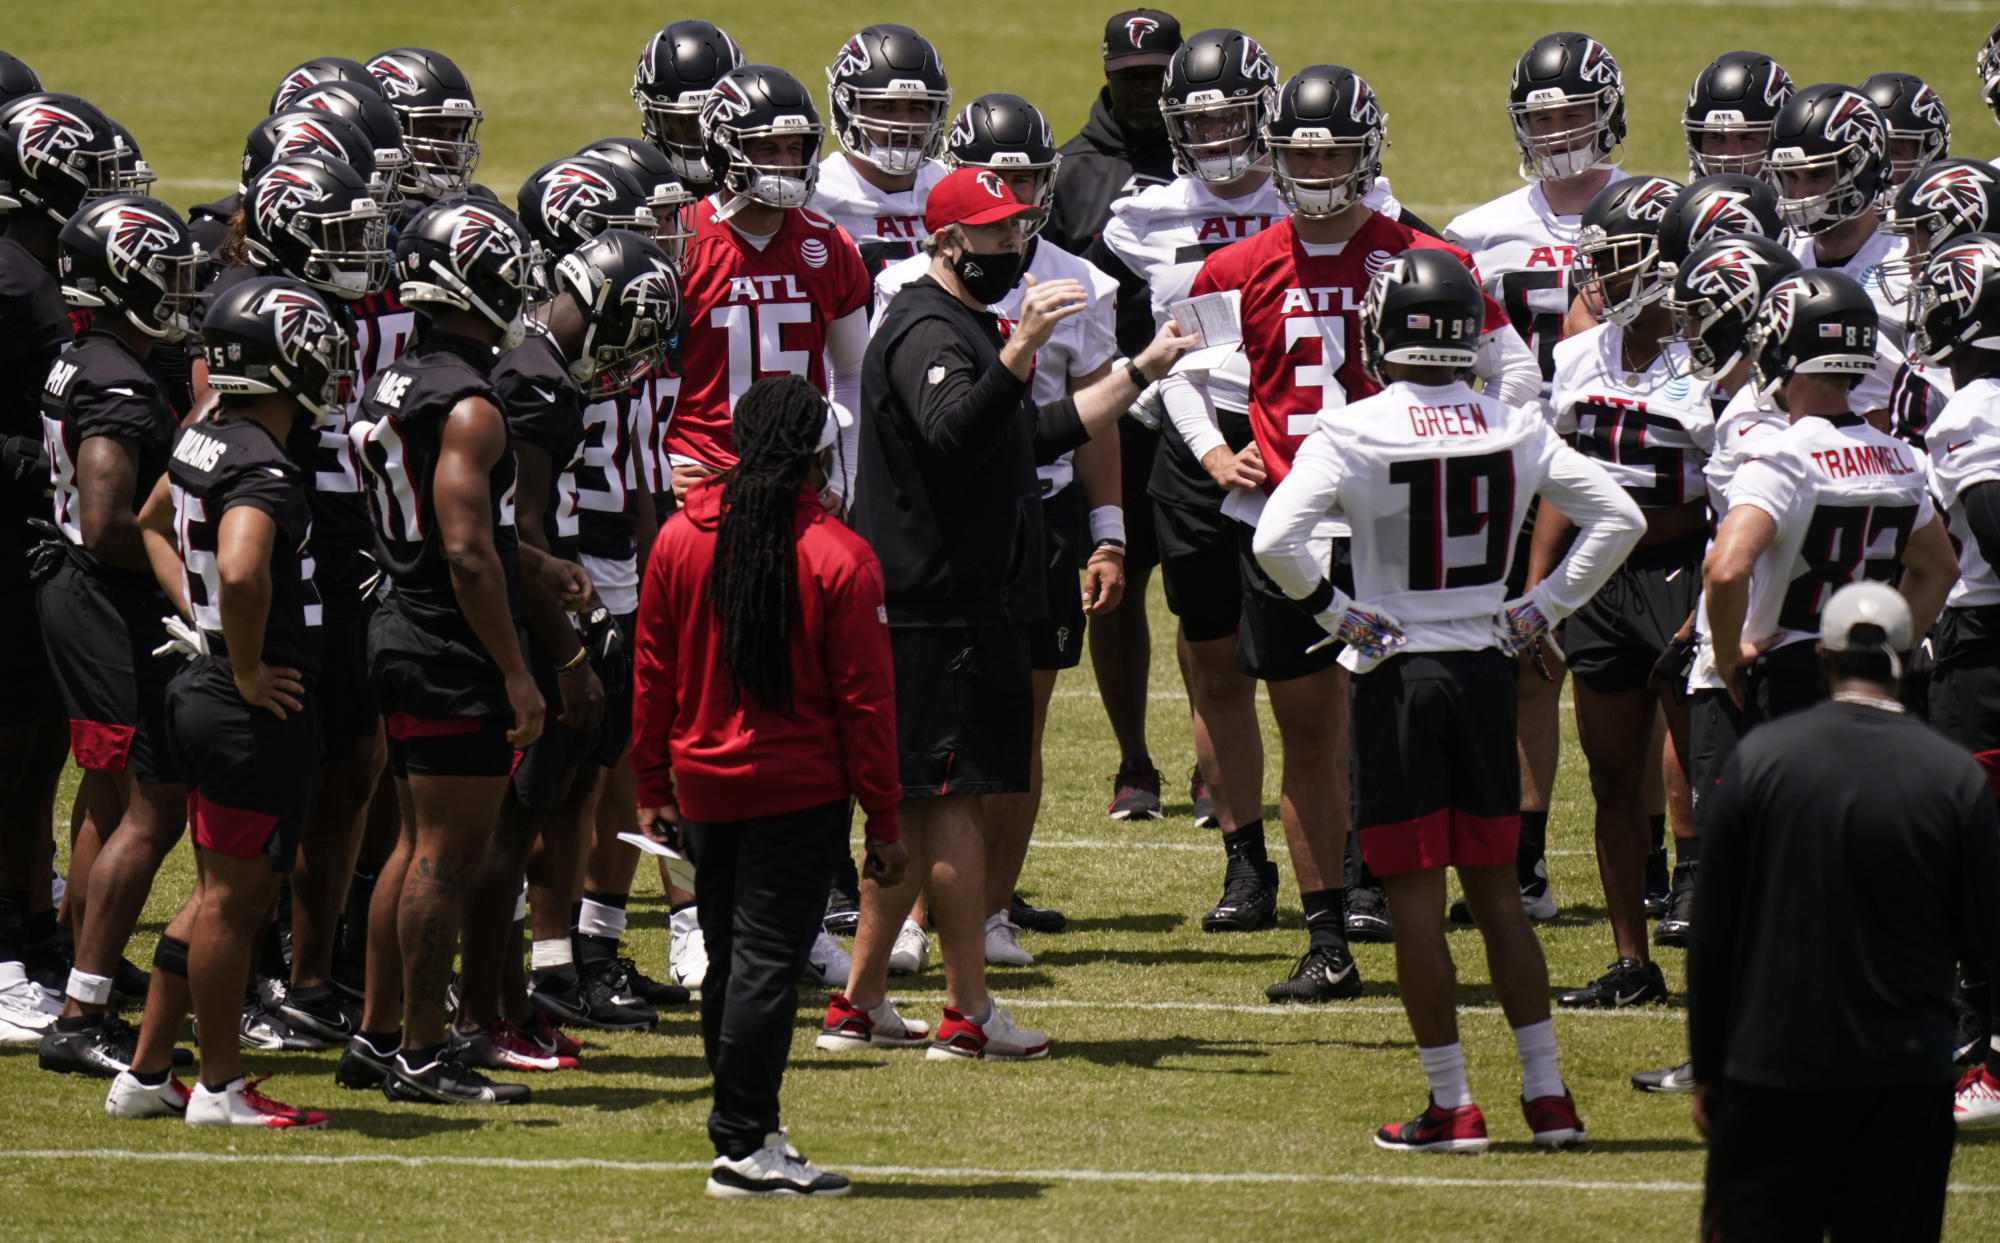 Falcons rookie minicamp: Highlights from the first two days